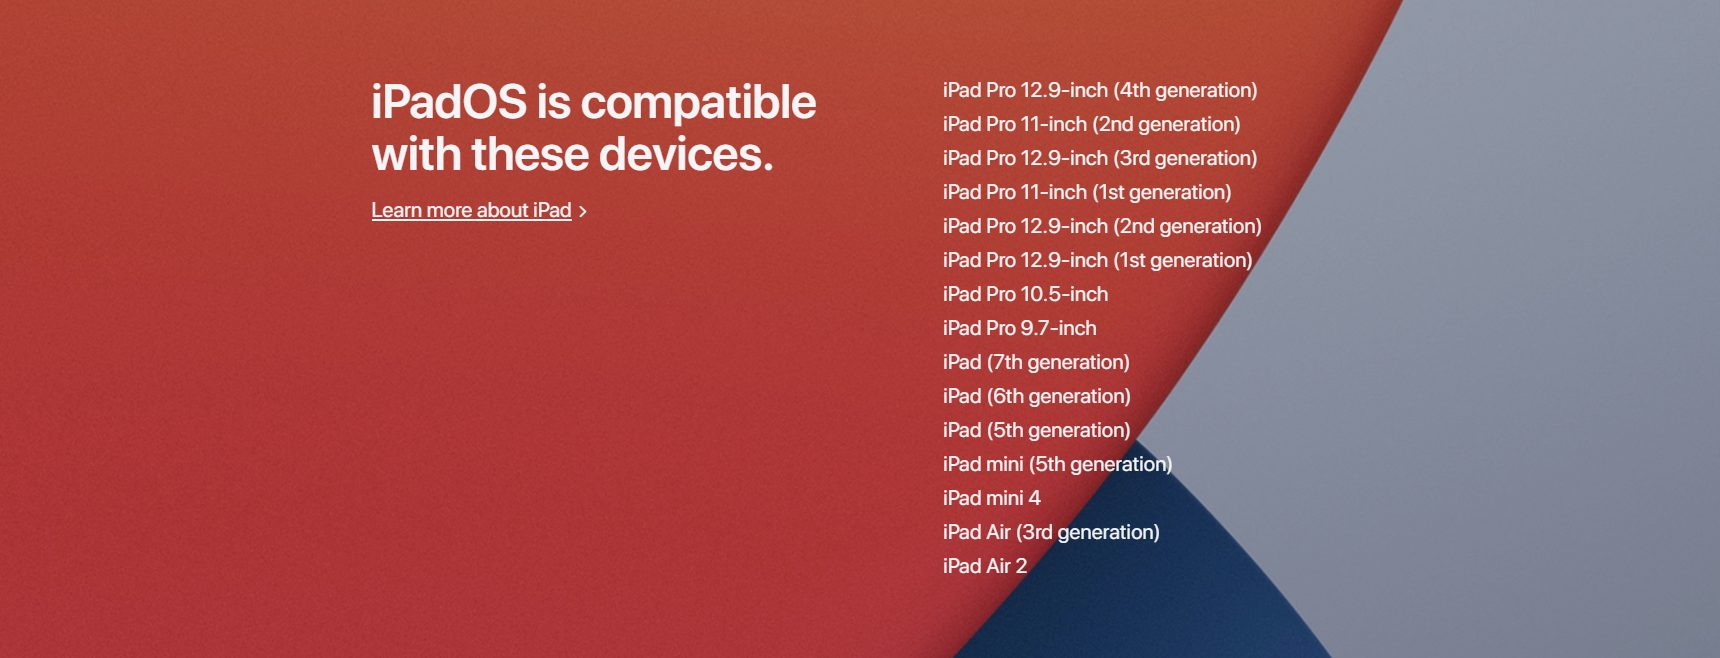 iPadsOS compatibility